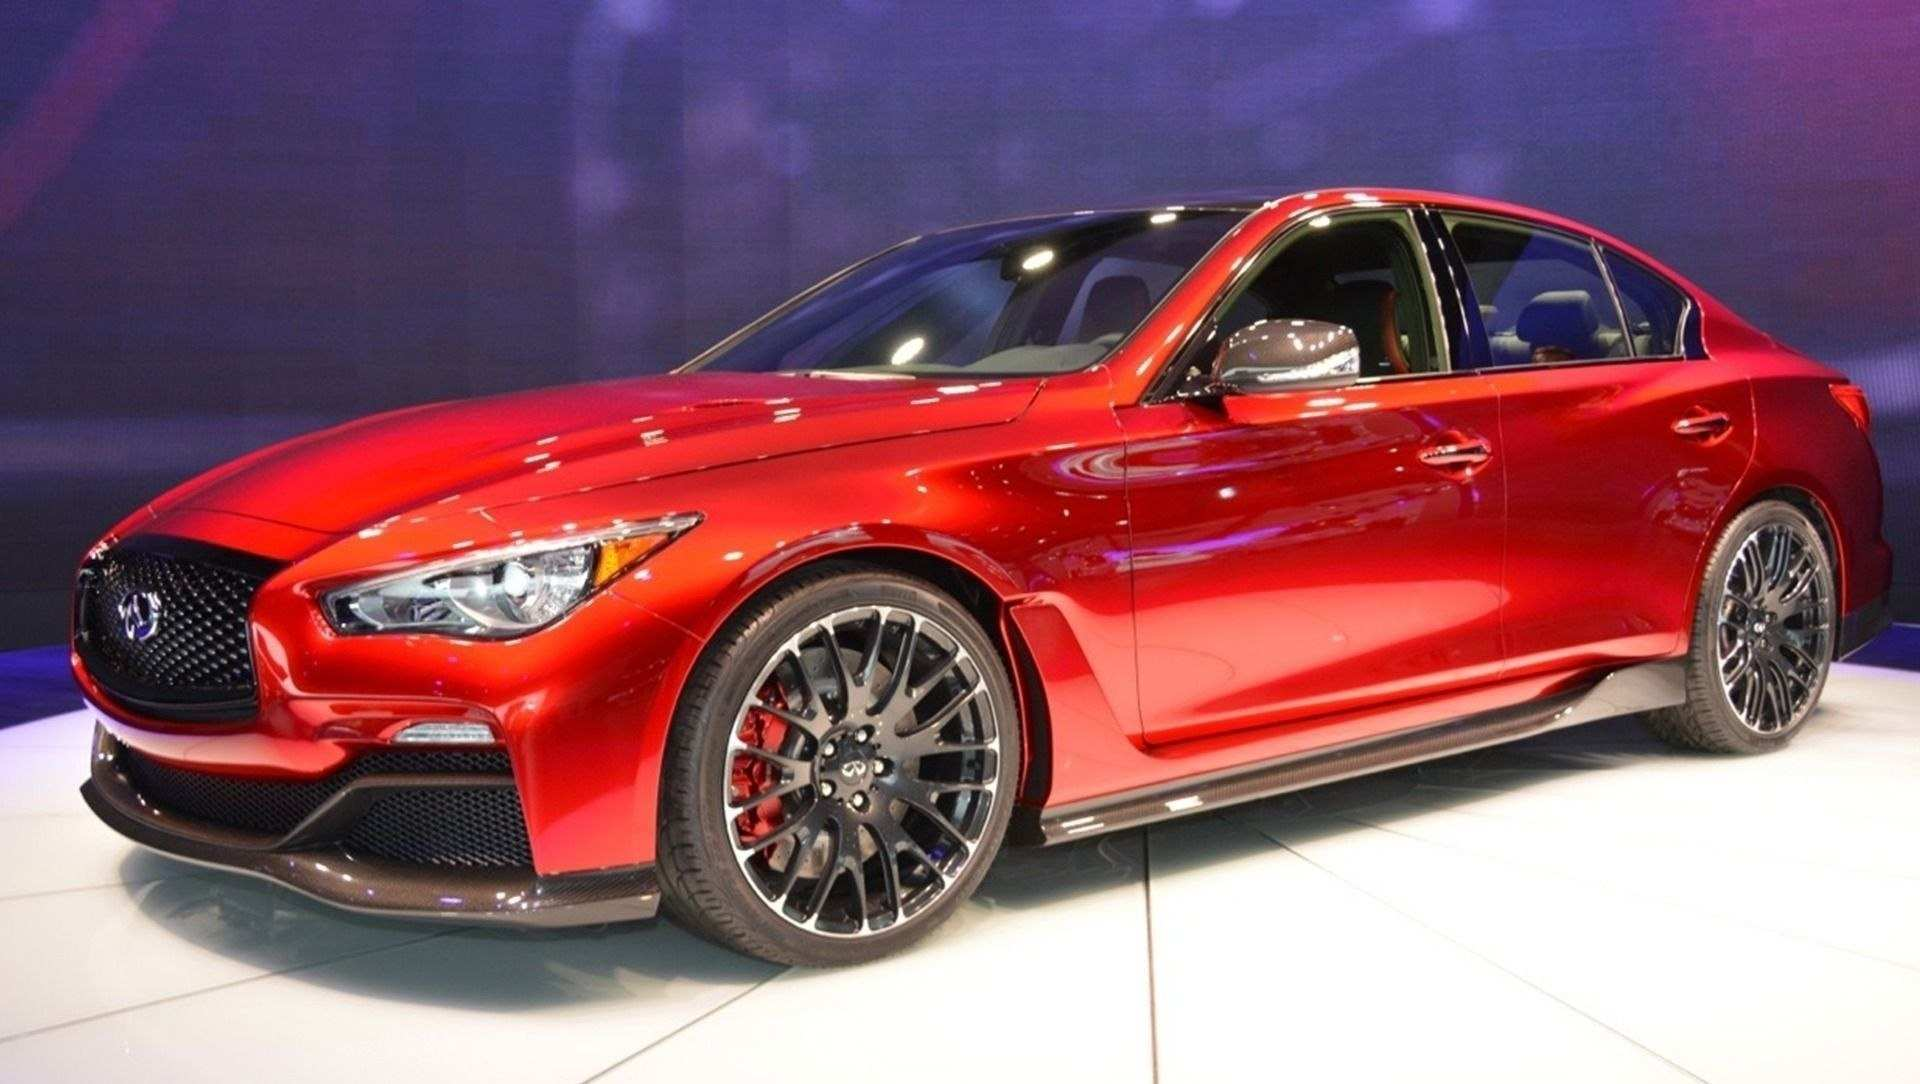 69 A 2020 Infiniti Q50 Coupe Eau Rouge Picture